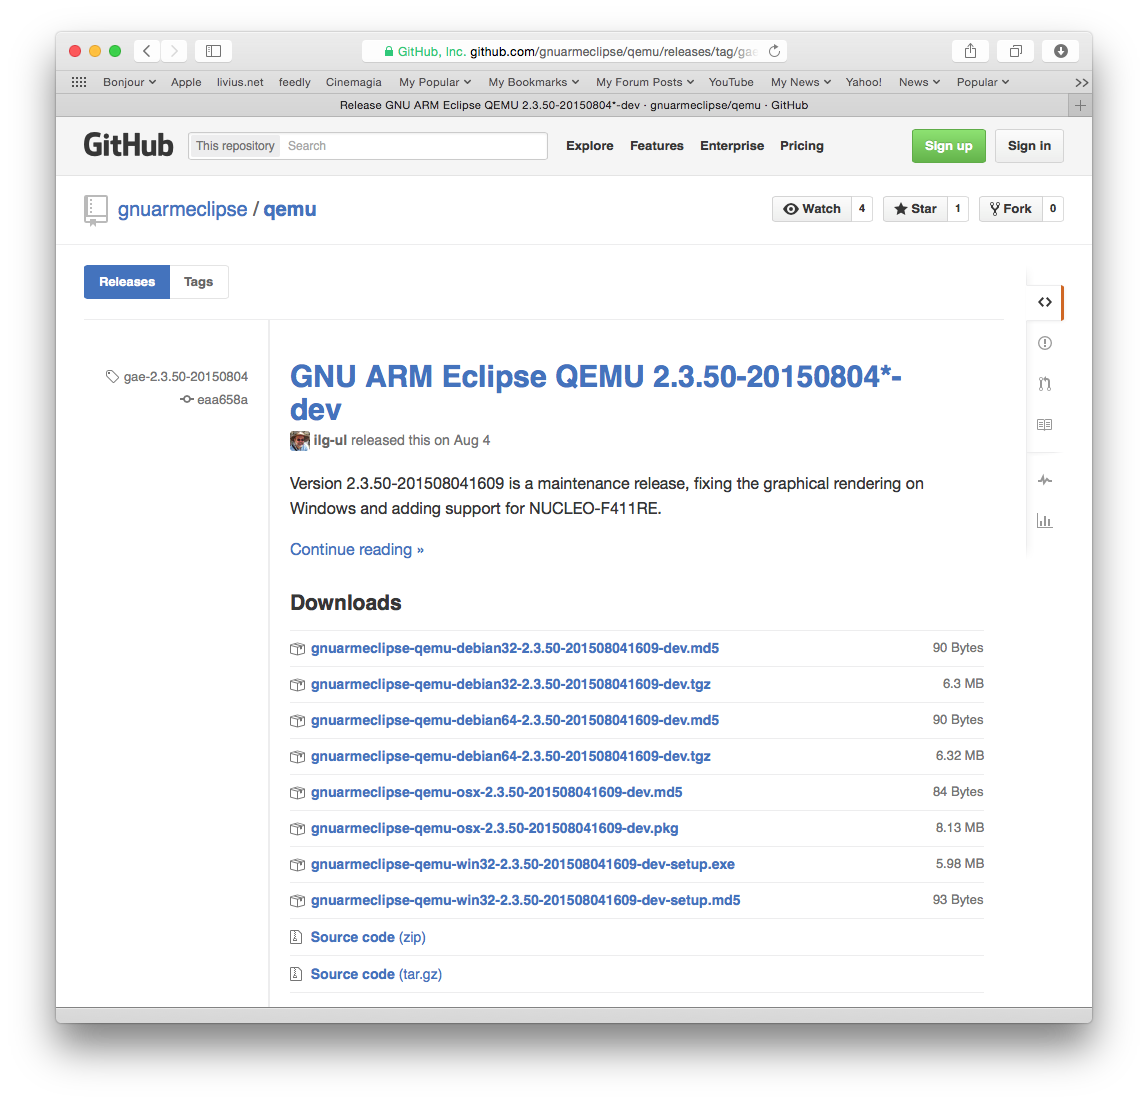 The QEMU Releases page